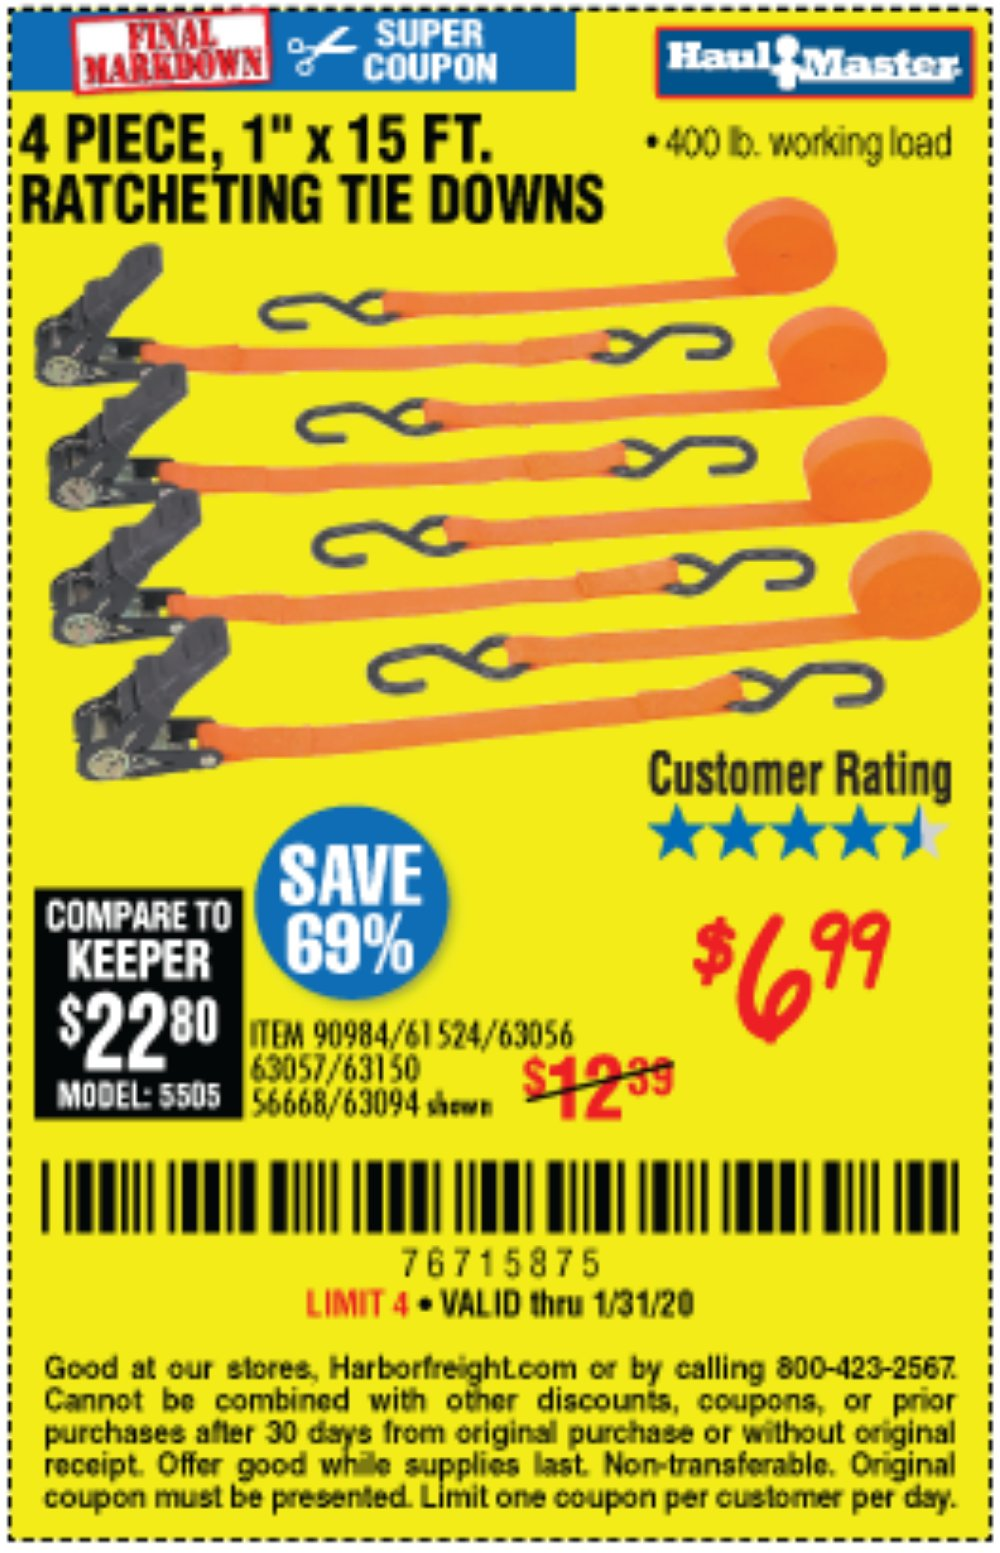 Harbor Freight Coupon, HF Coupons - 4 Piece, 1